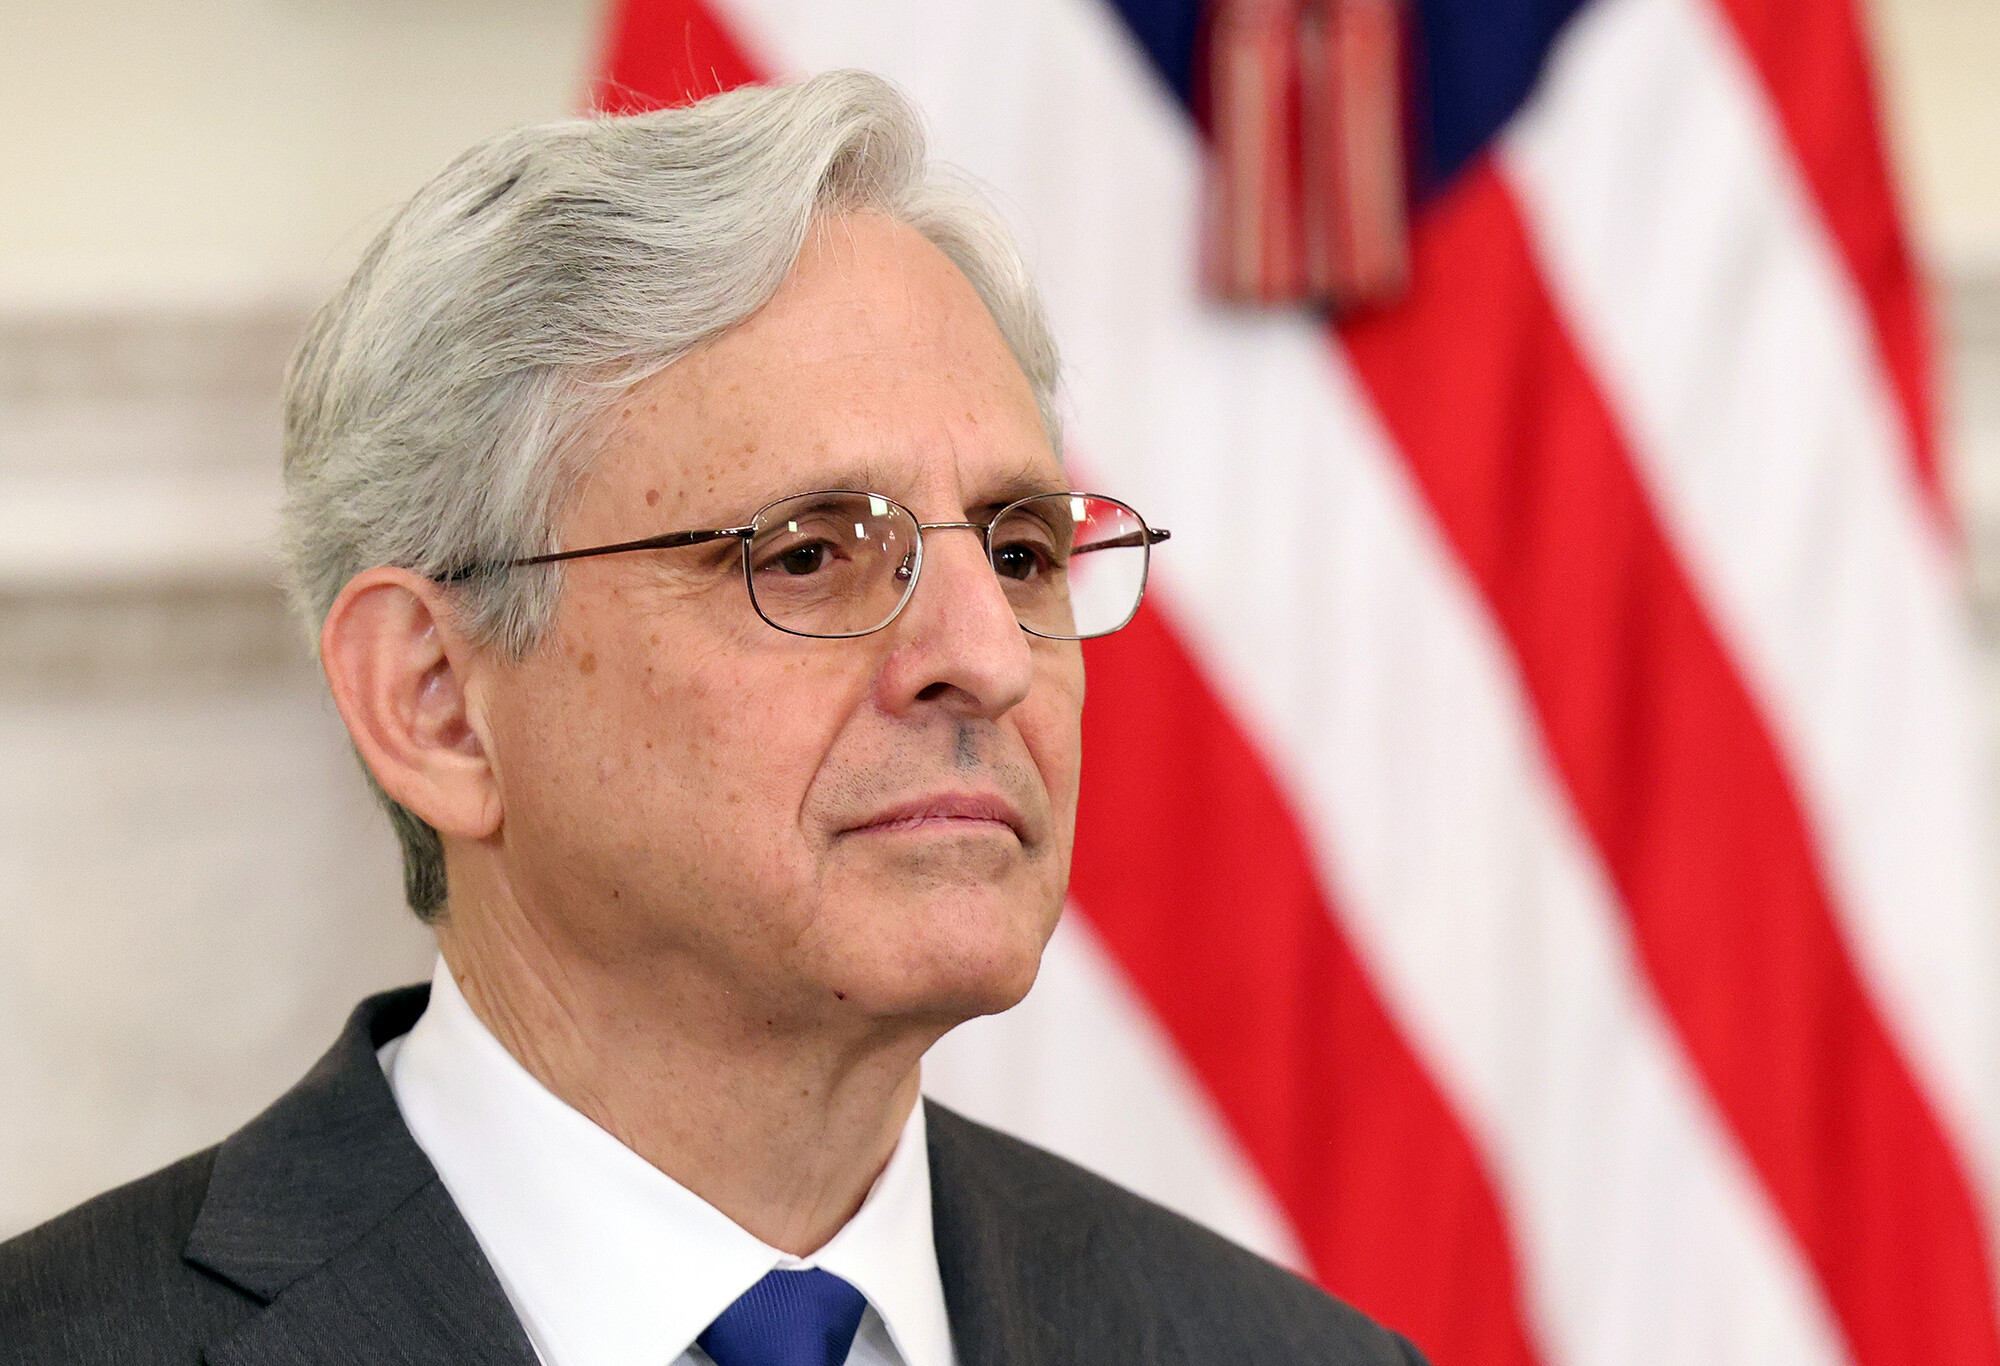 Bannon January 6 probe referral puts Attorney General Merrick Garland in center of legal and political storm